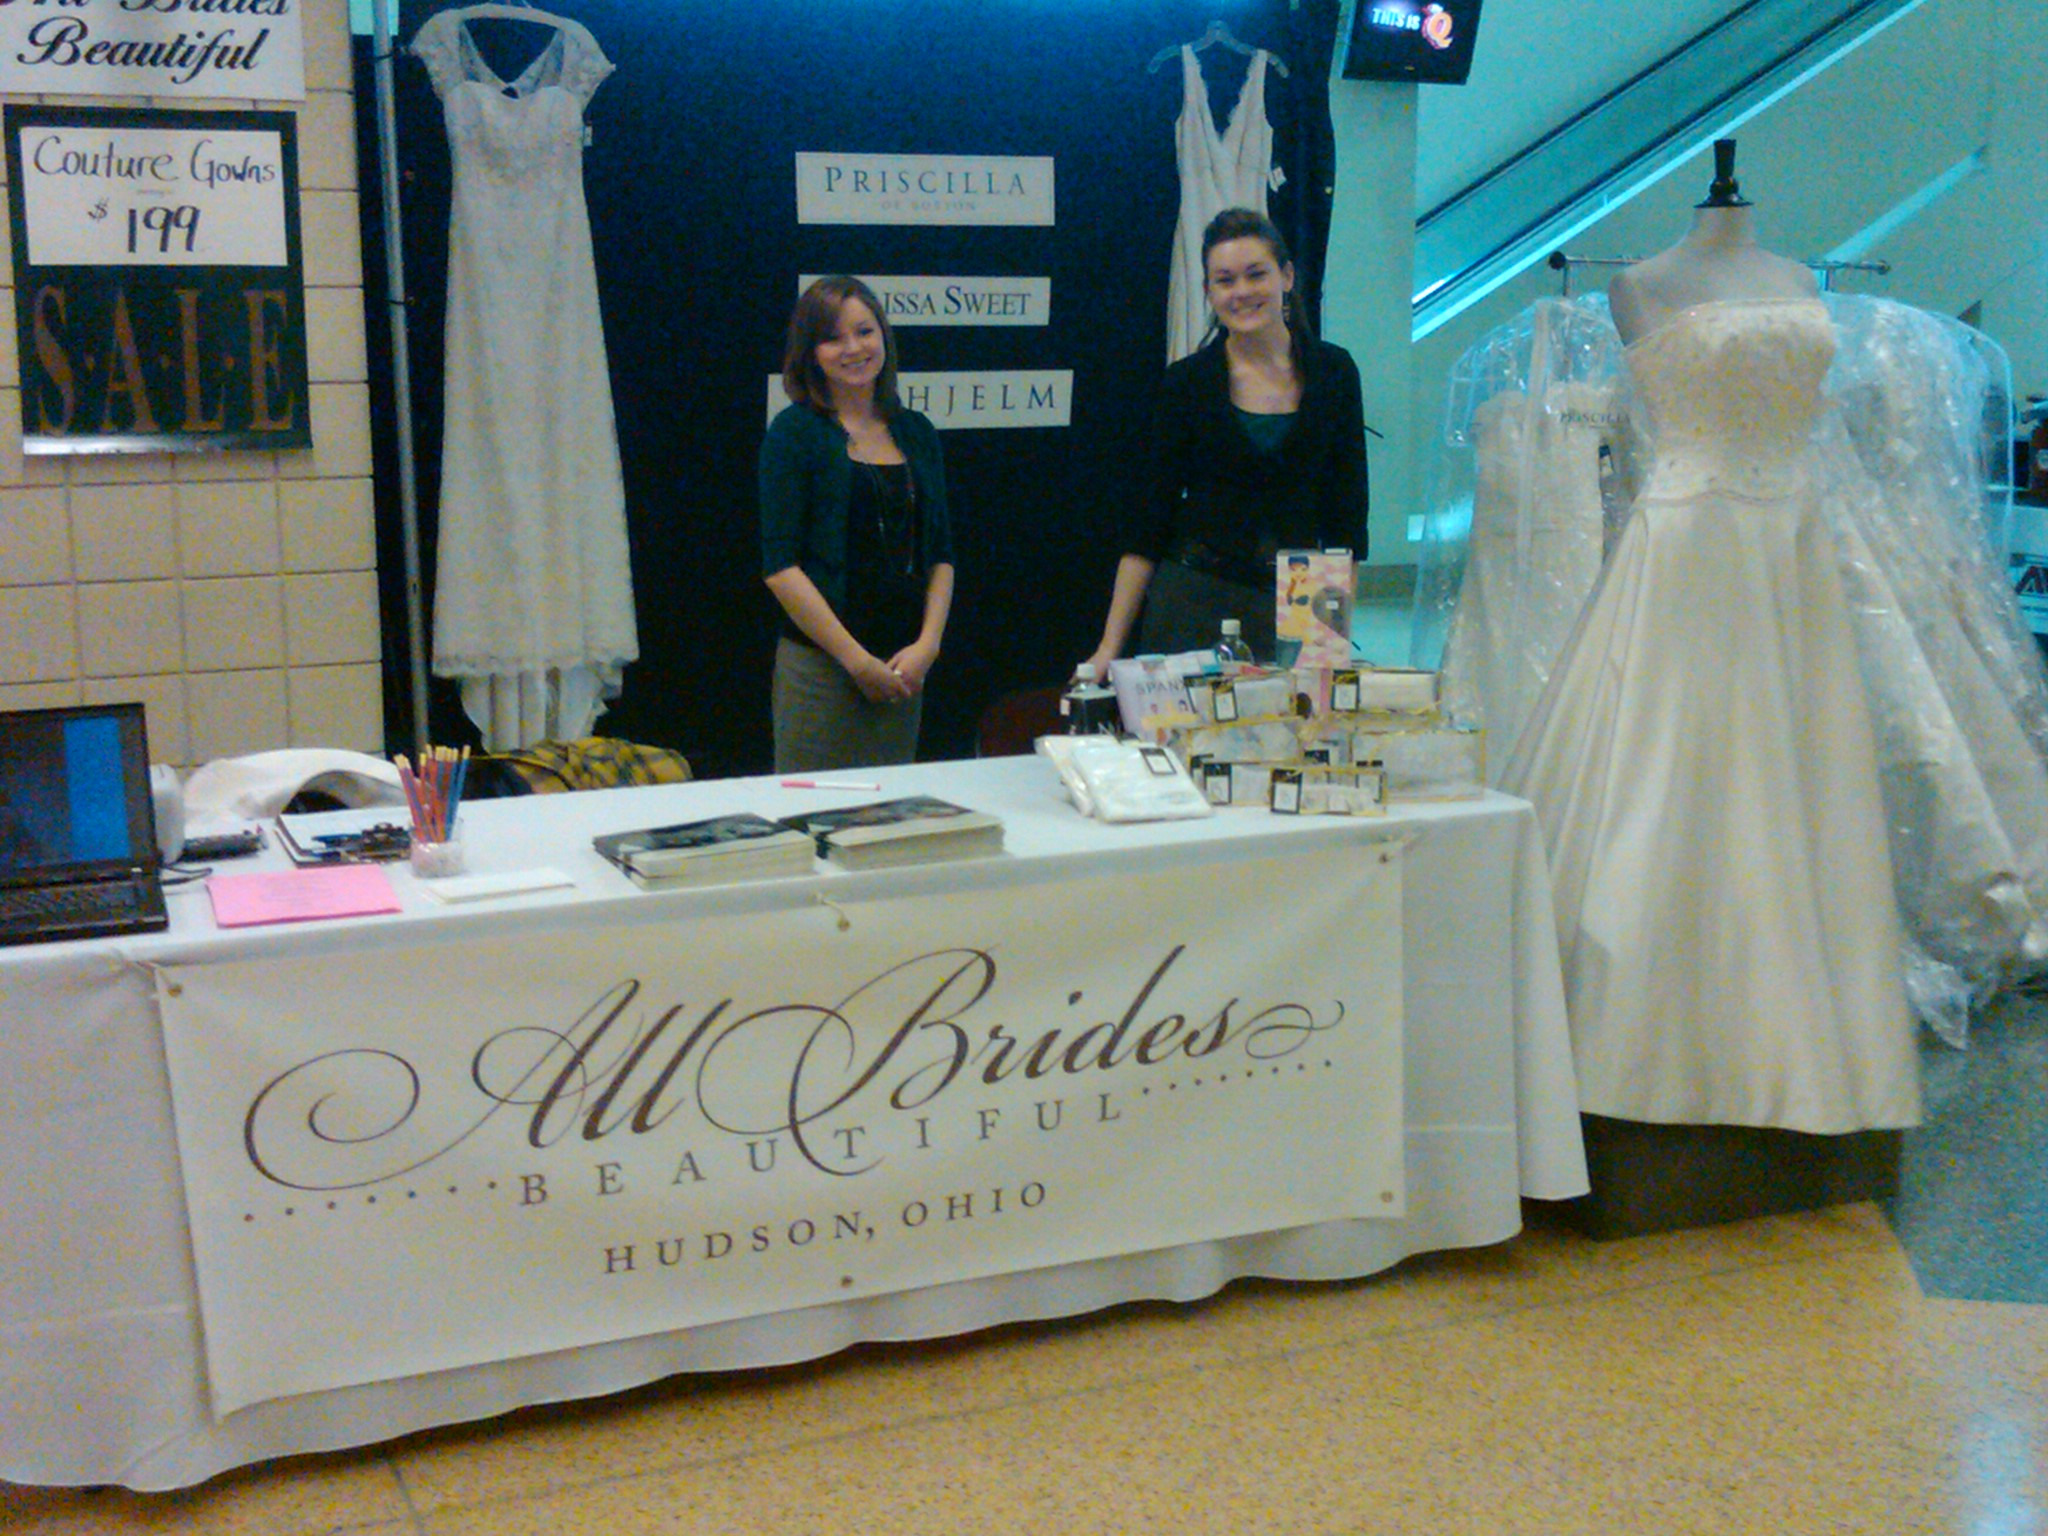 bridal show wedding on ice quicken loans arena 2 27 10 wedding loans All Brides Beautiful New Logo by Jessi Tubero